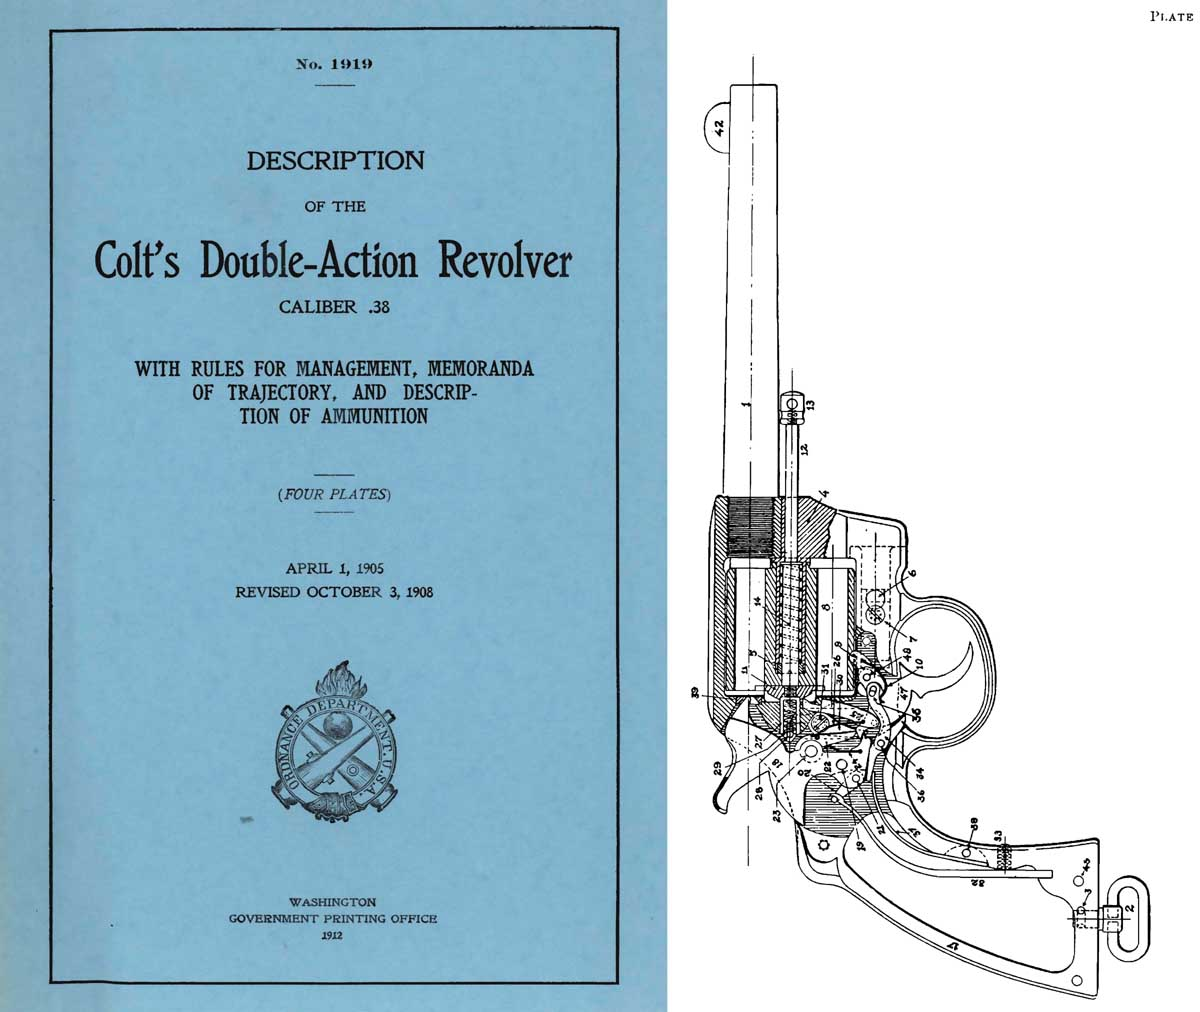 Description of Colt's Double-Action Revolver .38 1912